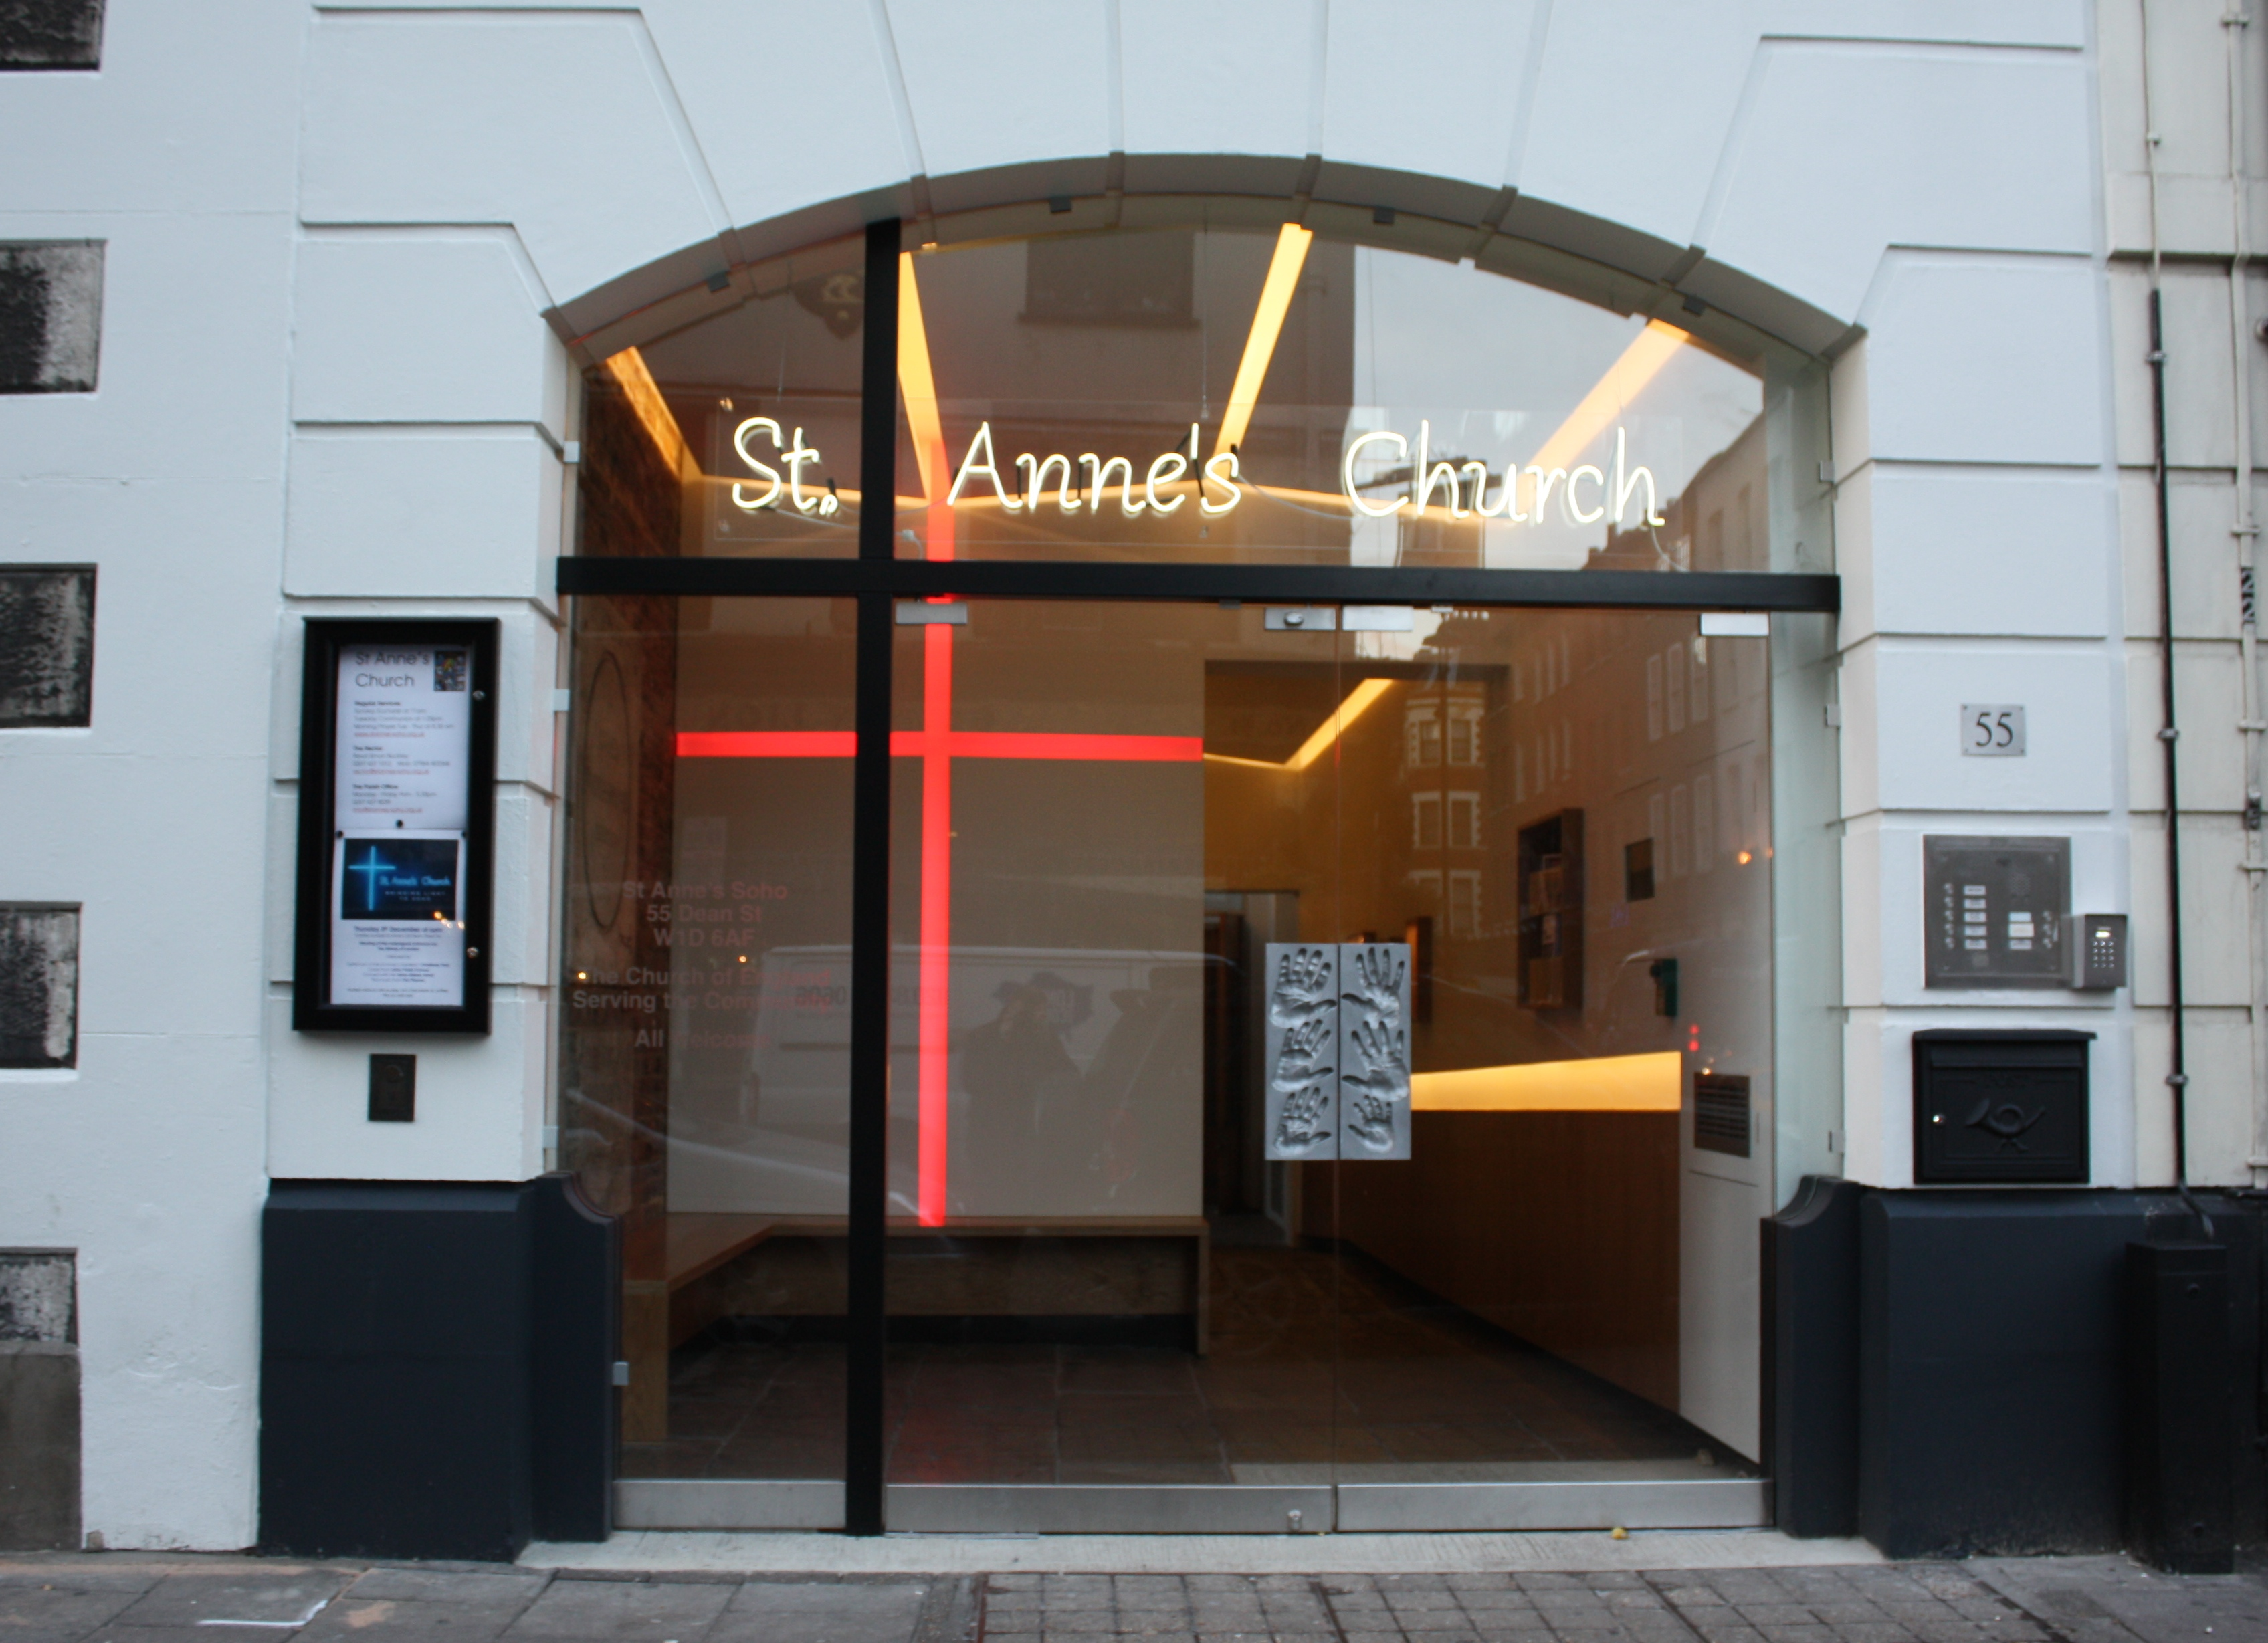 Presidents' Award for re-ordering and alterations: St Anne, Soho (New entrance)